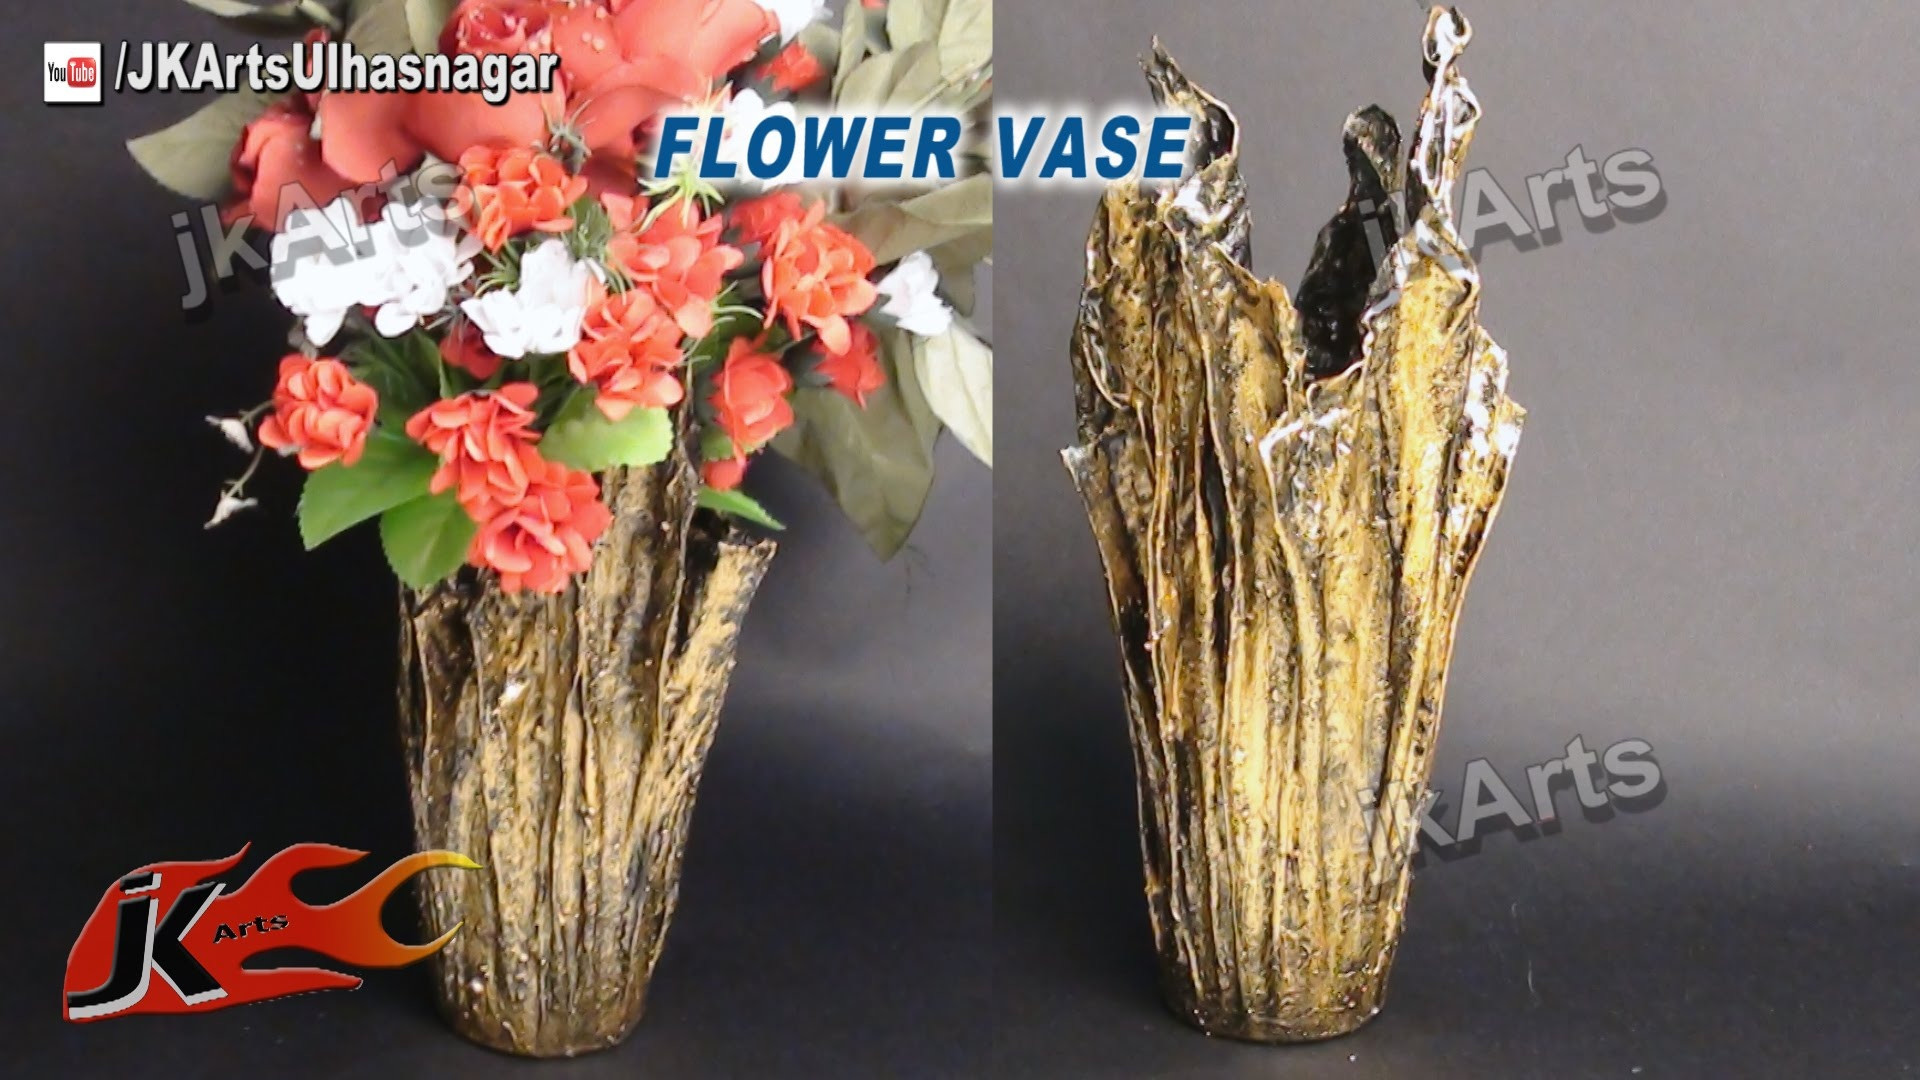 Plastic Flower Vase Inserts Of 27 Fresh Long Flower Vase Decoration Ideas Flower Decoration Ideas Regarding Long Flower Vase Decoration Ideas Lovely Diy Vase From Waste Cloth How to Make